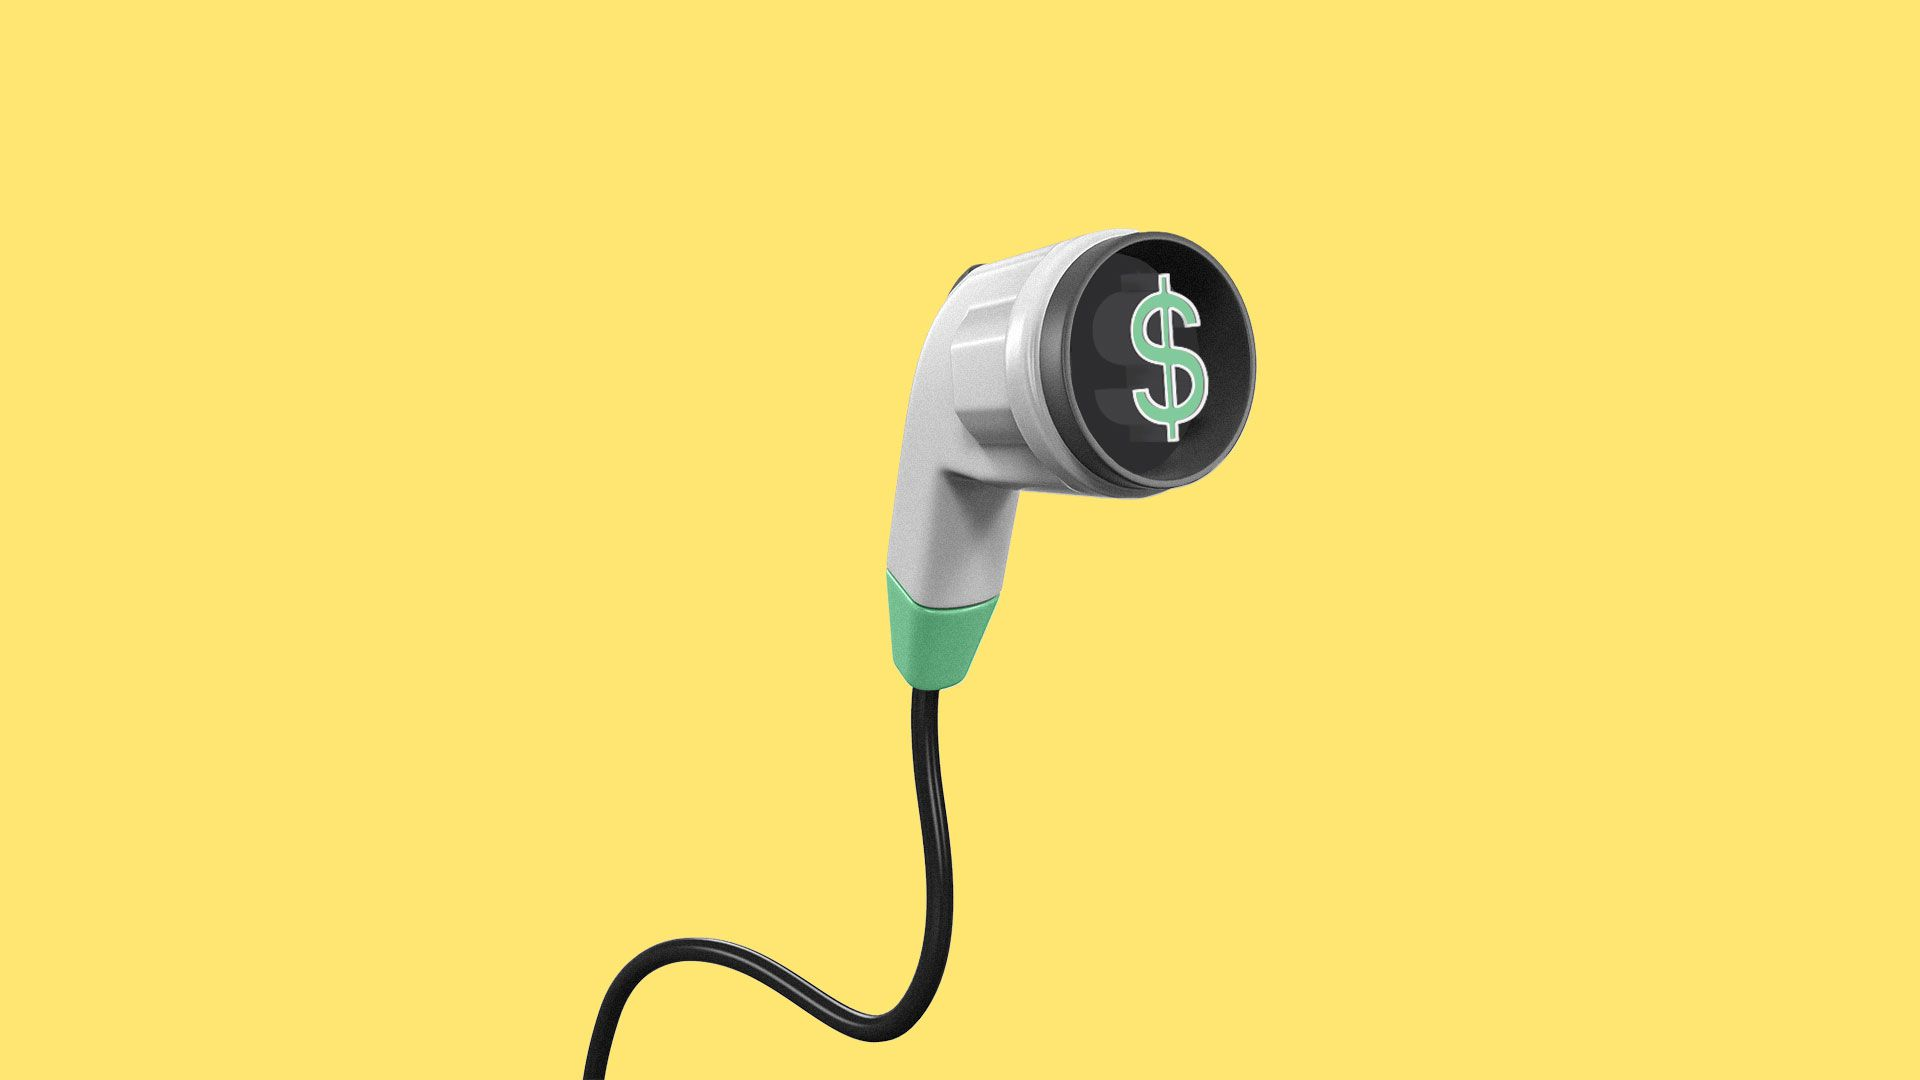 Illustration of an electric car charging pump with a dollar bill as the prong.